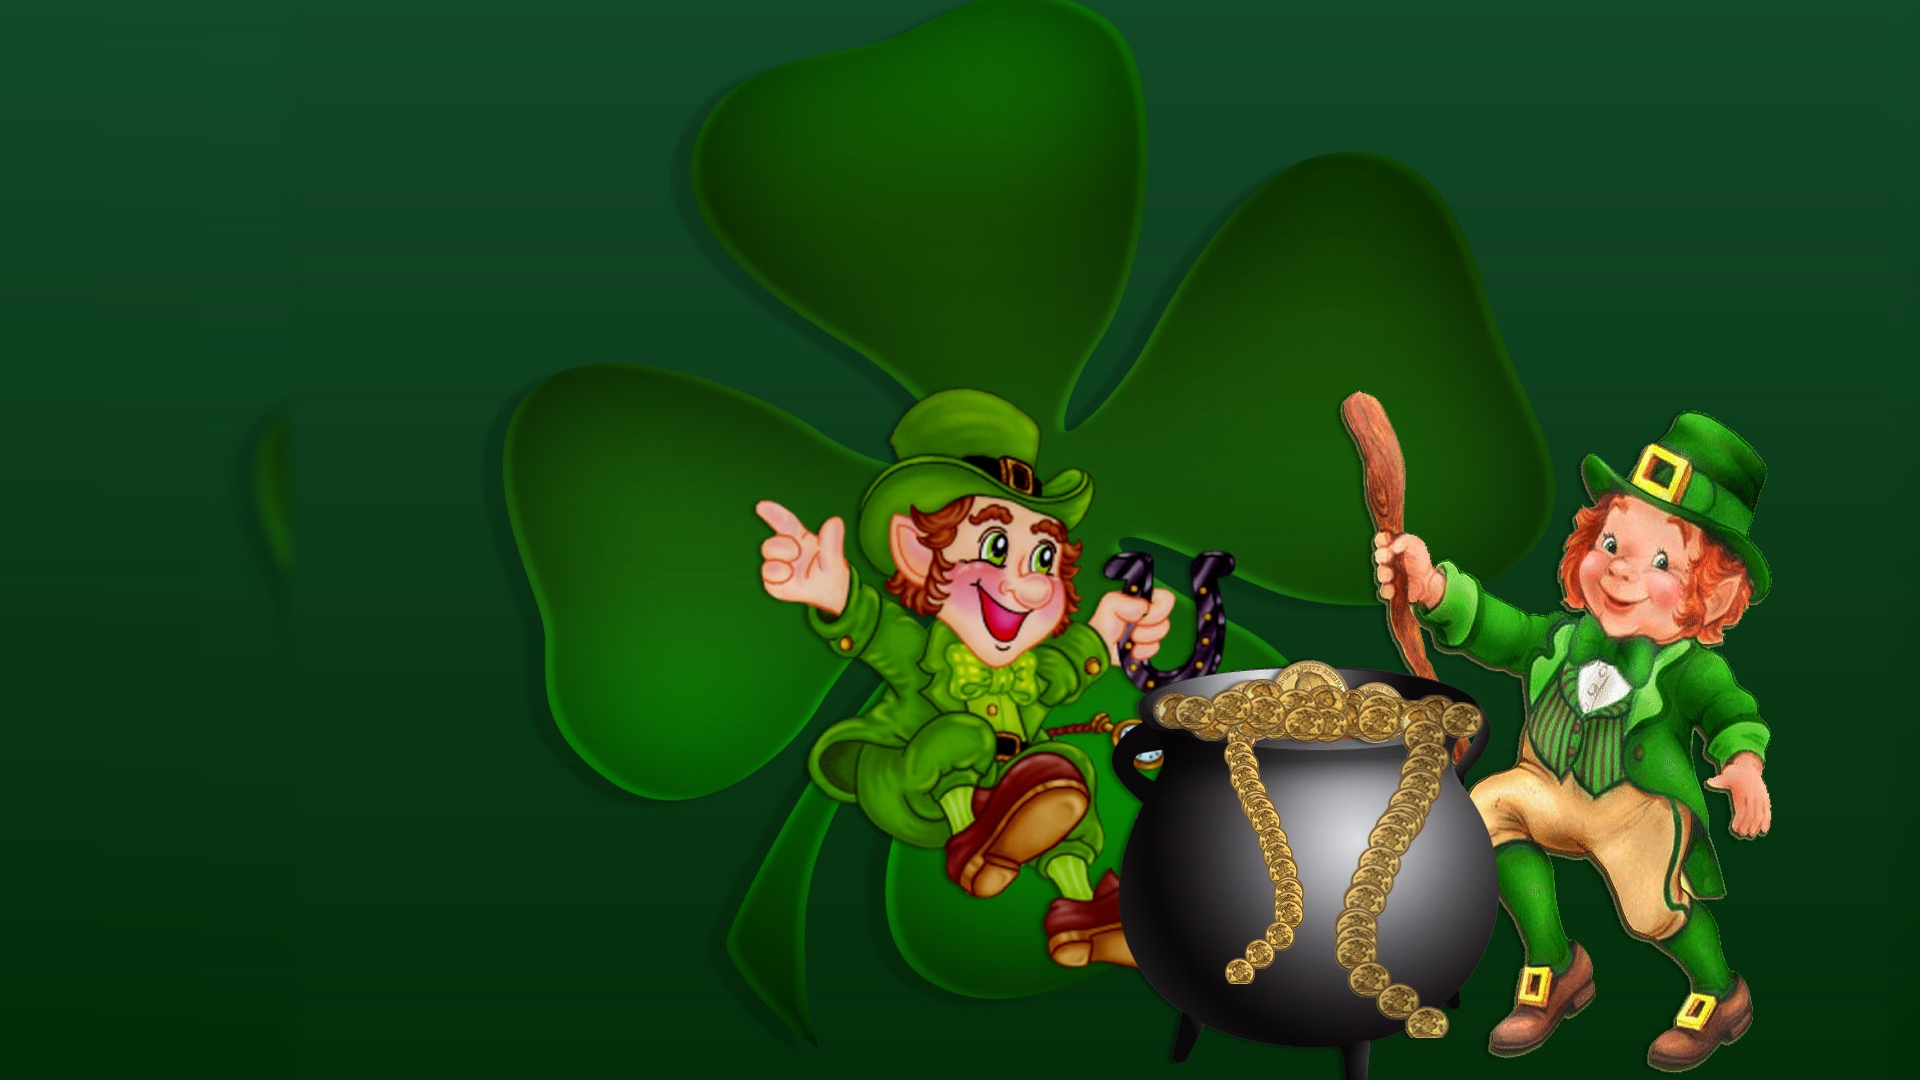 Animated St Patricks Day Wallpaper - Viewing Gallery